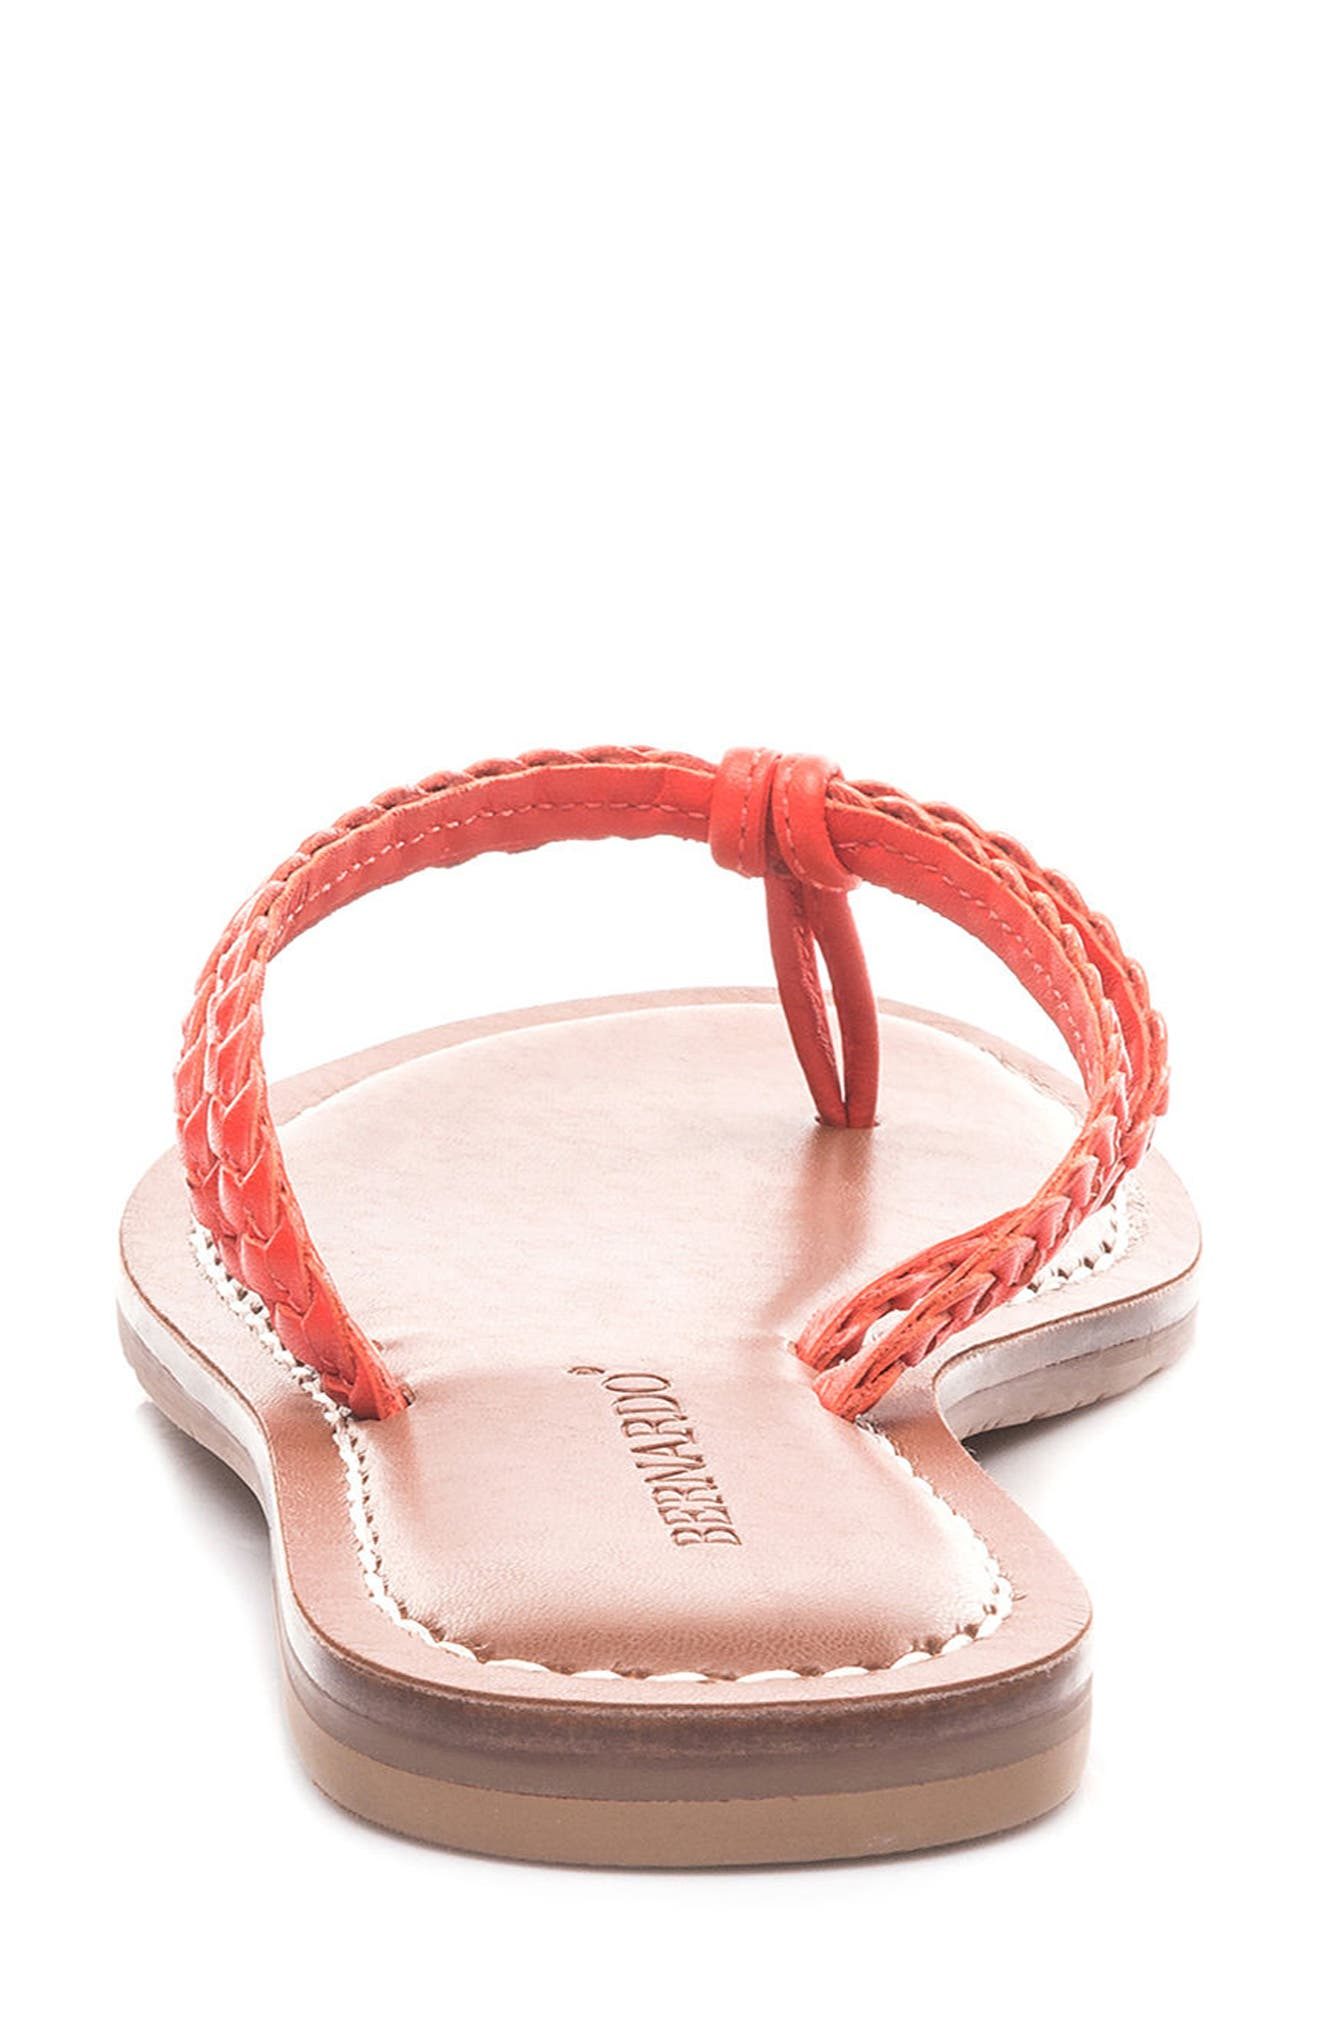 Bernardo Greta Braided Strap Sandal,                             Alternate thumbnail 46, color,